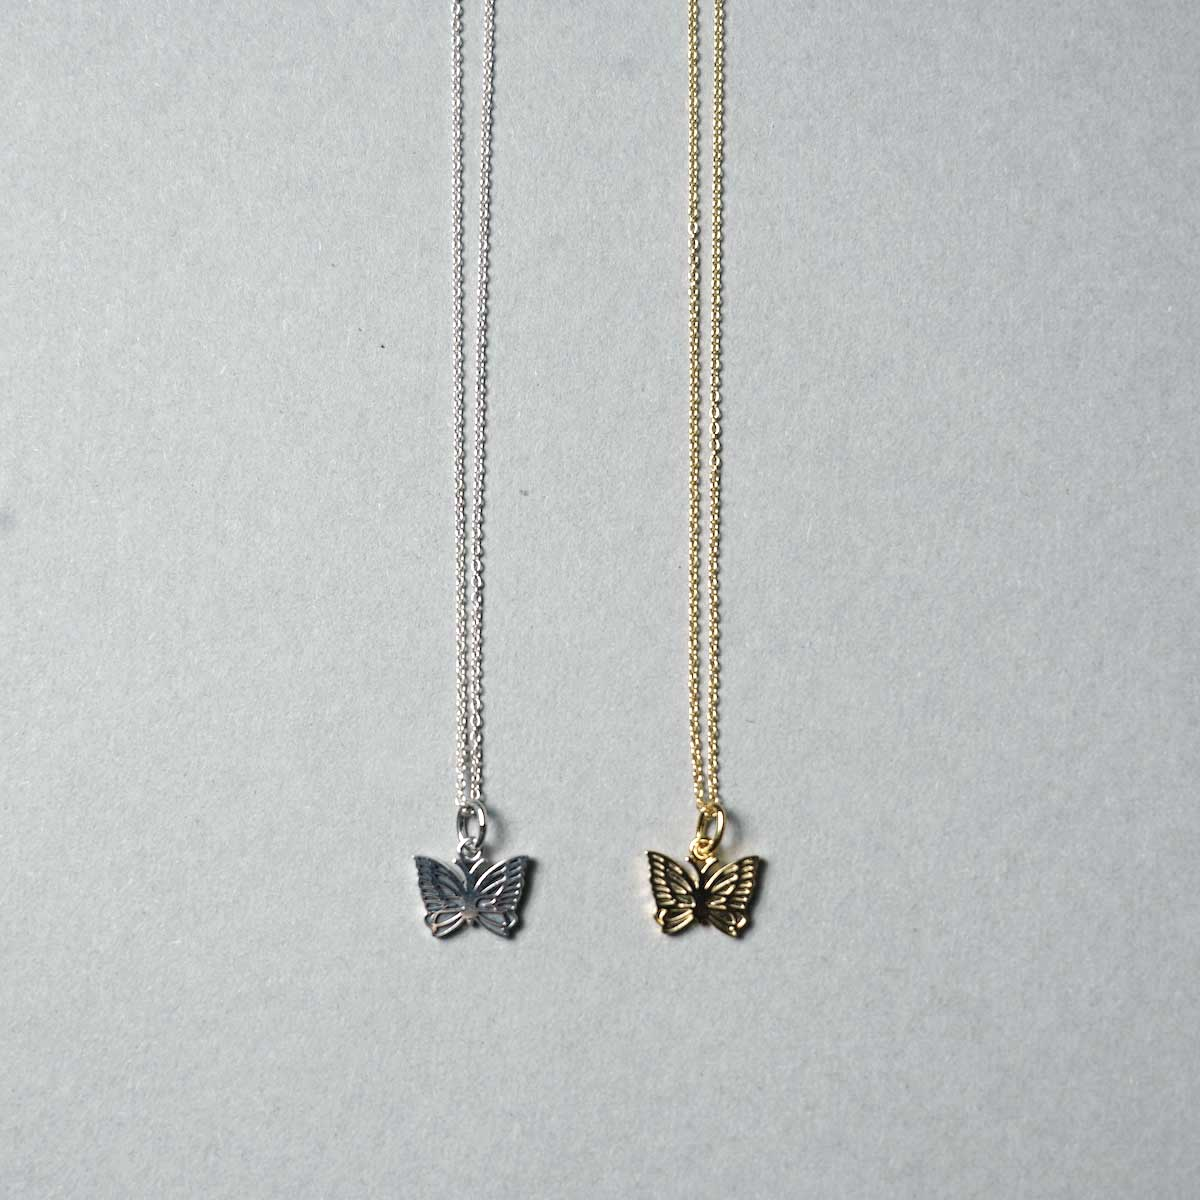 Needles / Pendant (Gold Plate / 925 Silver)